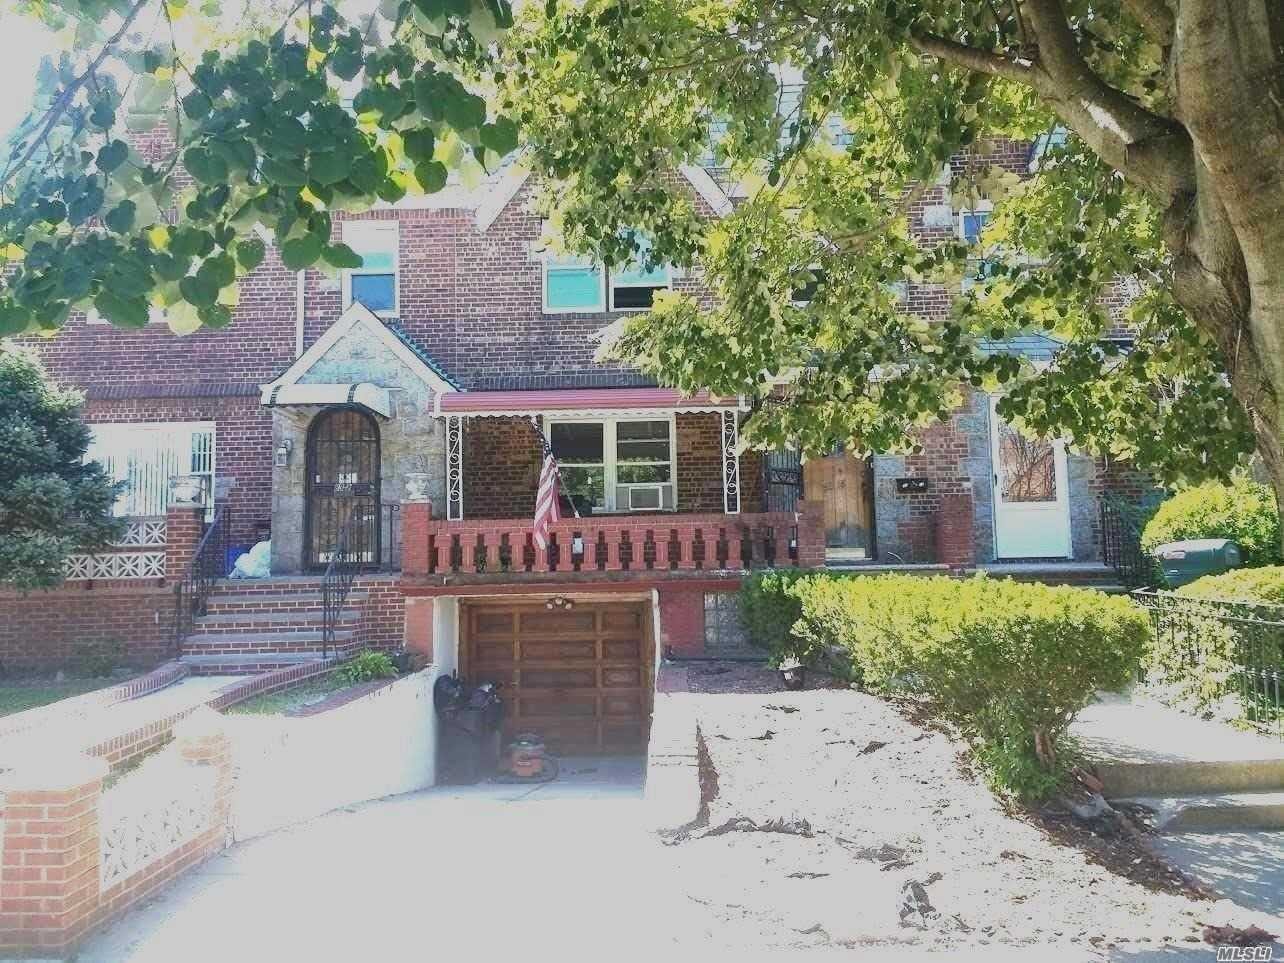 Remarkable 2 Family Home In Glendale With Lot Of Potential. This Home Is Great For 1st Time Buyer And Good Rental. It Features Hardwood Floors Throughout, With 3/2 Bedrooms 3 Baths A Private Backyard And Driveway, Etc. Also Close Proximity To All Amenities.